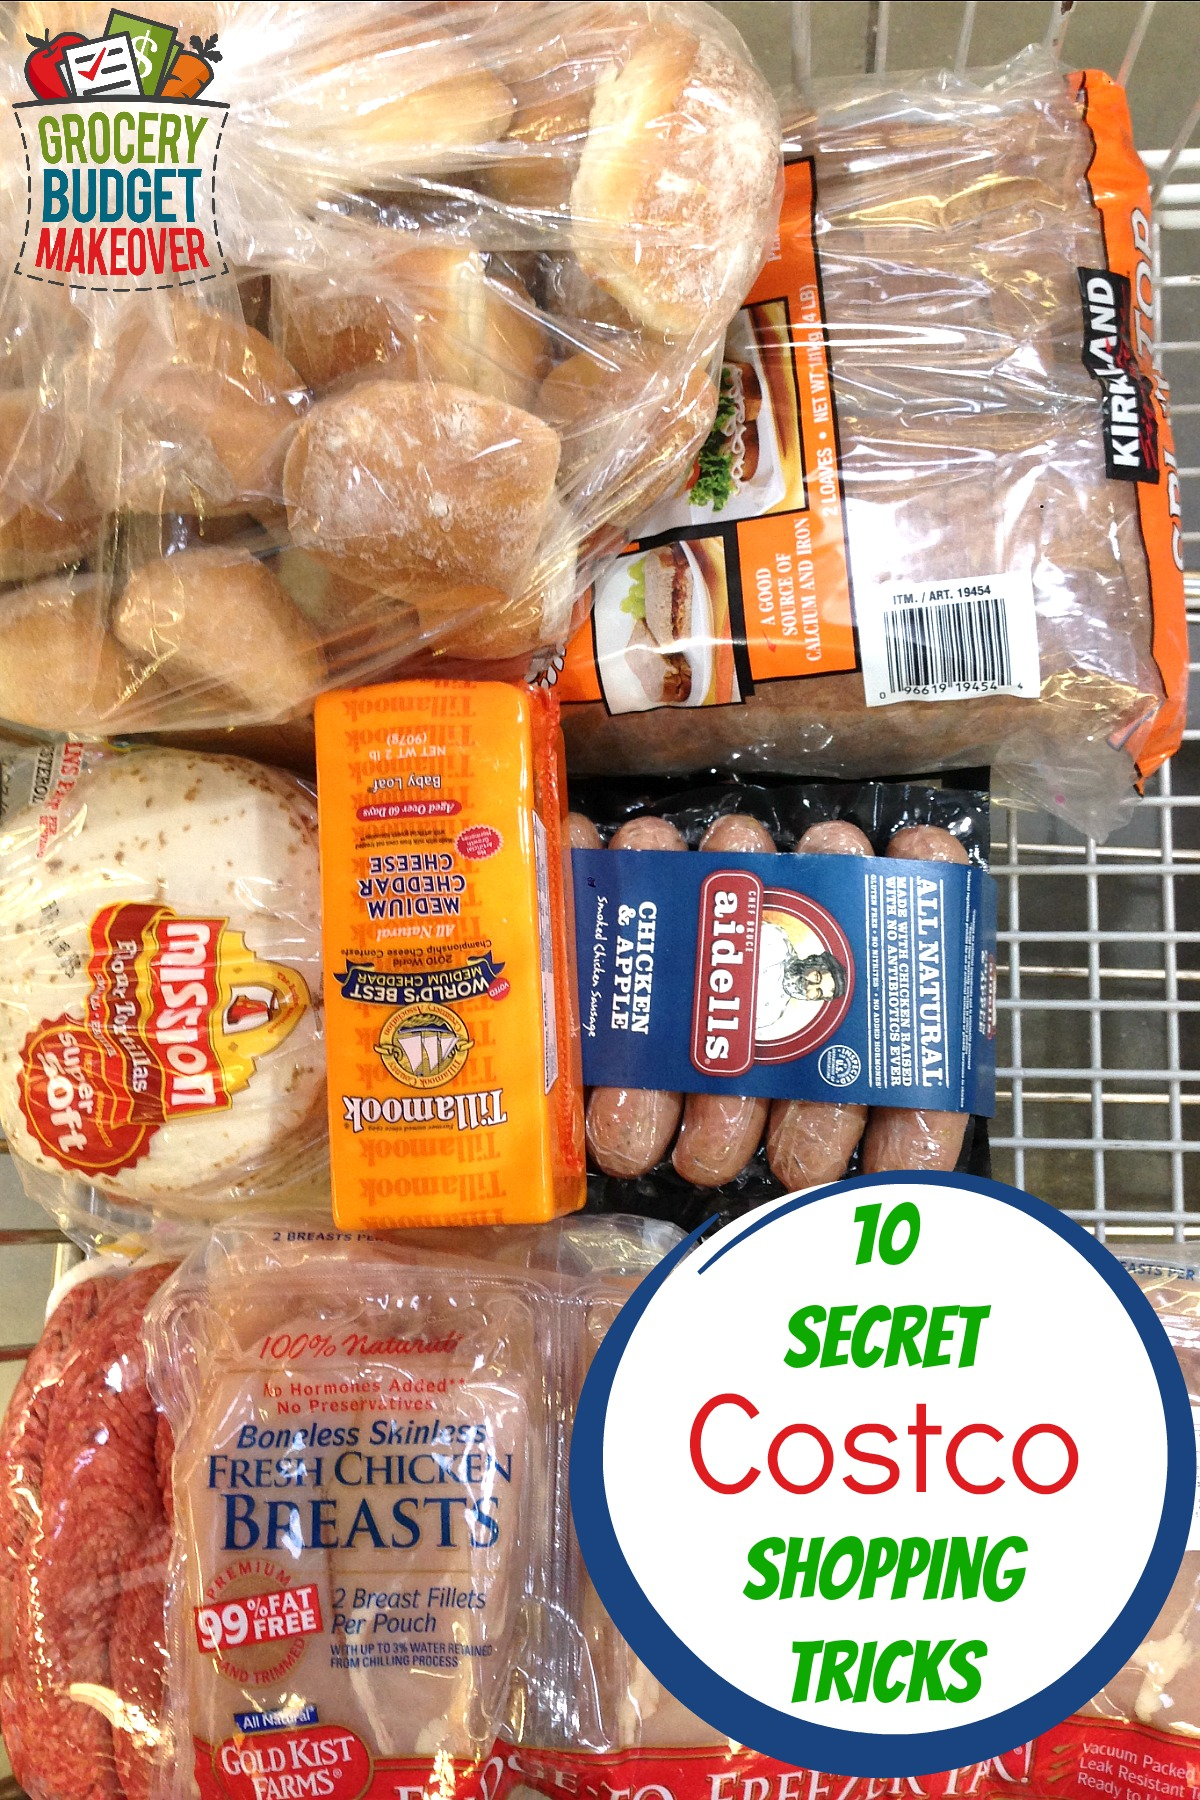 10 Secret Costco Shopping Tricks